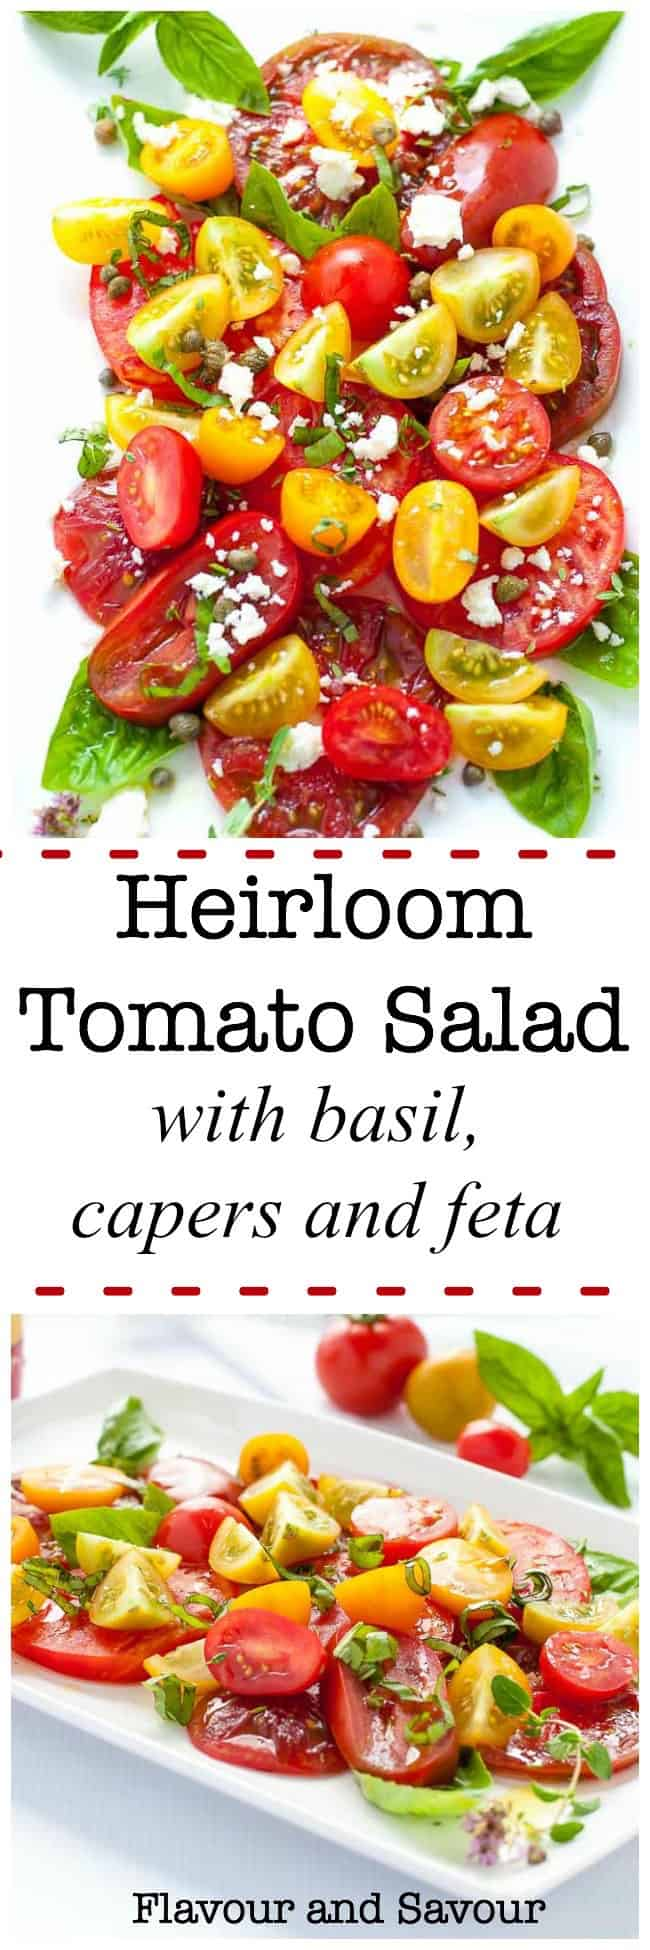 Basil, capers and feta cheese enhance the natural flavours of late-summer tomatoes in this simple recipe for Heirloom Tomato Salad.